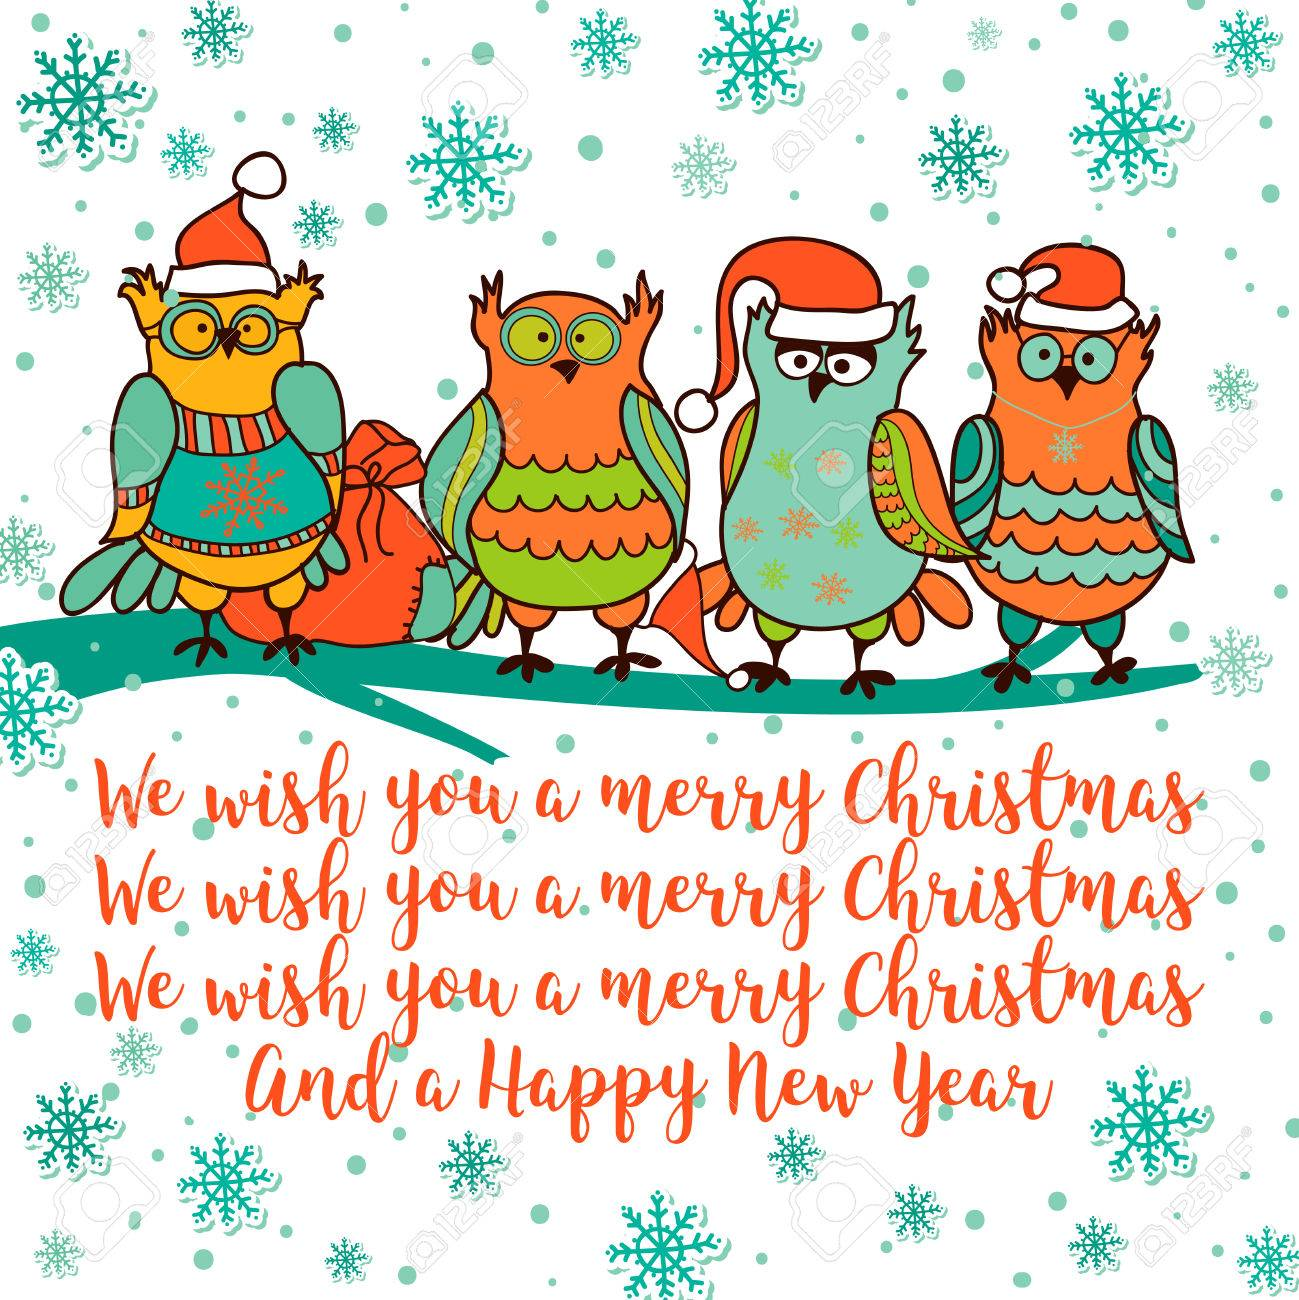 Image result for we wish you a merry christmas clipart